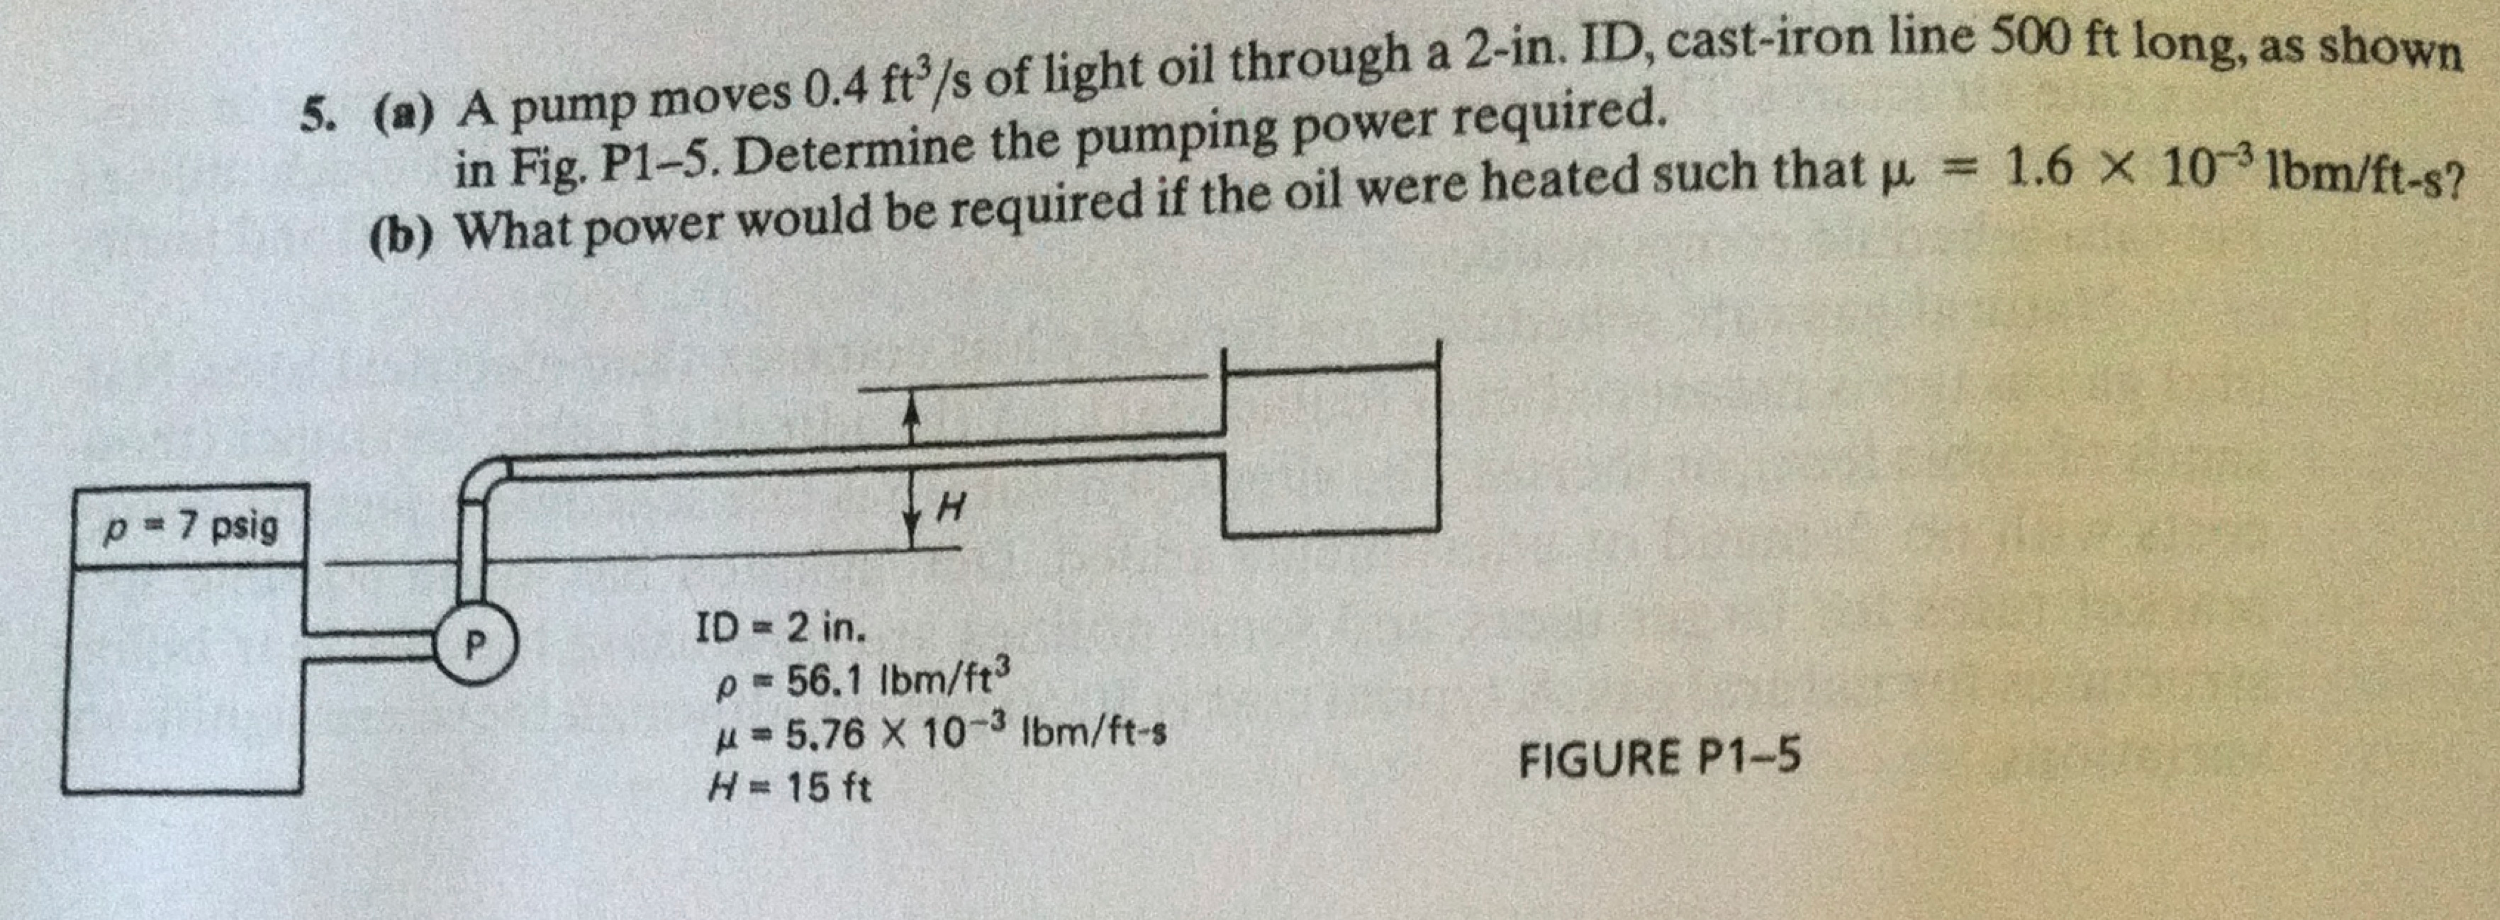 A pump moves 0.4 ft3 /s of light oil through a 2-i